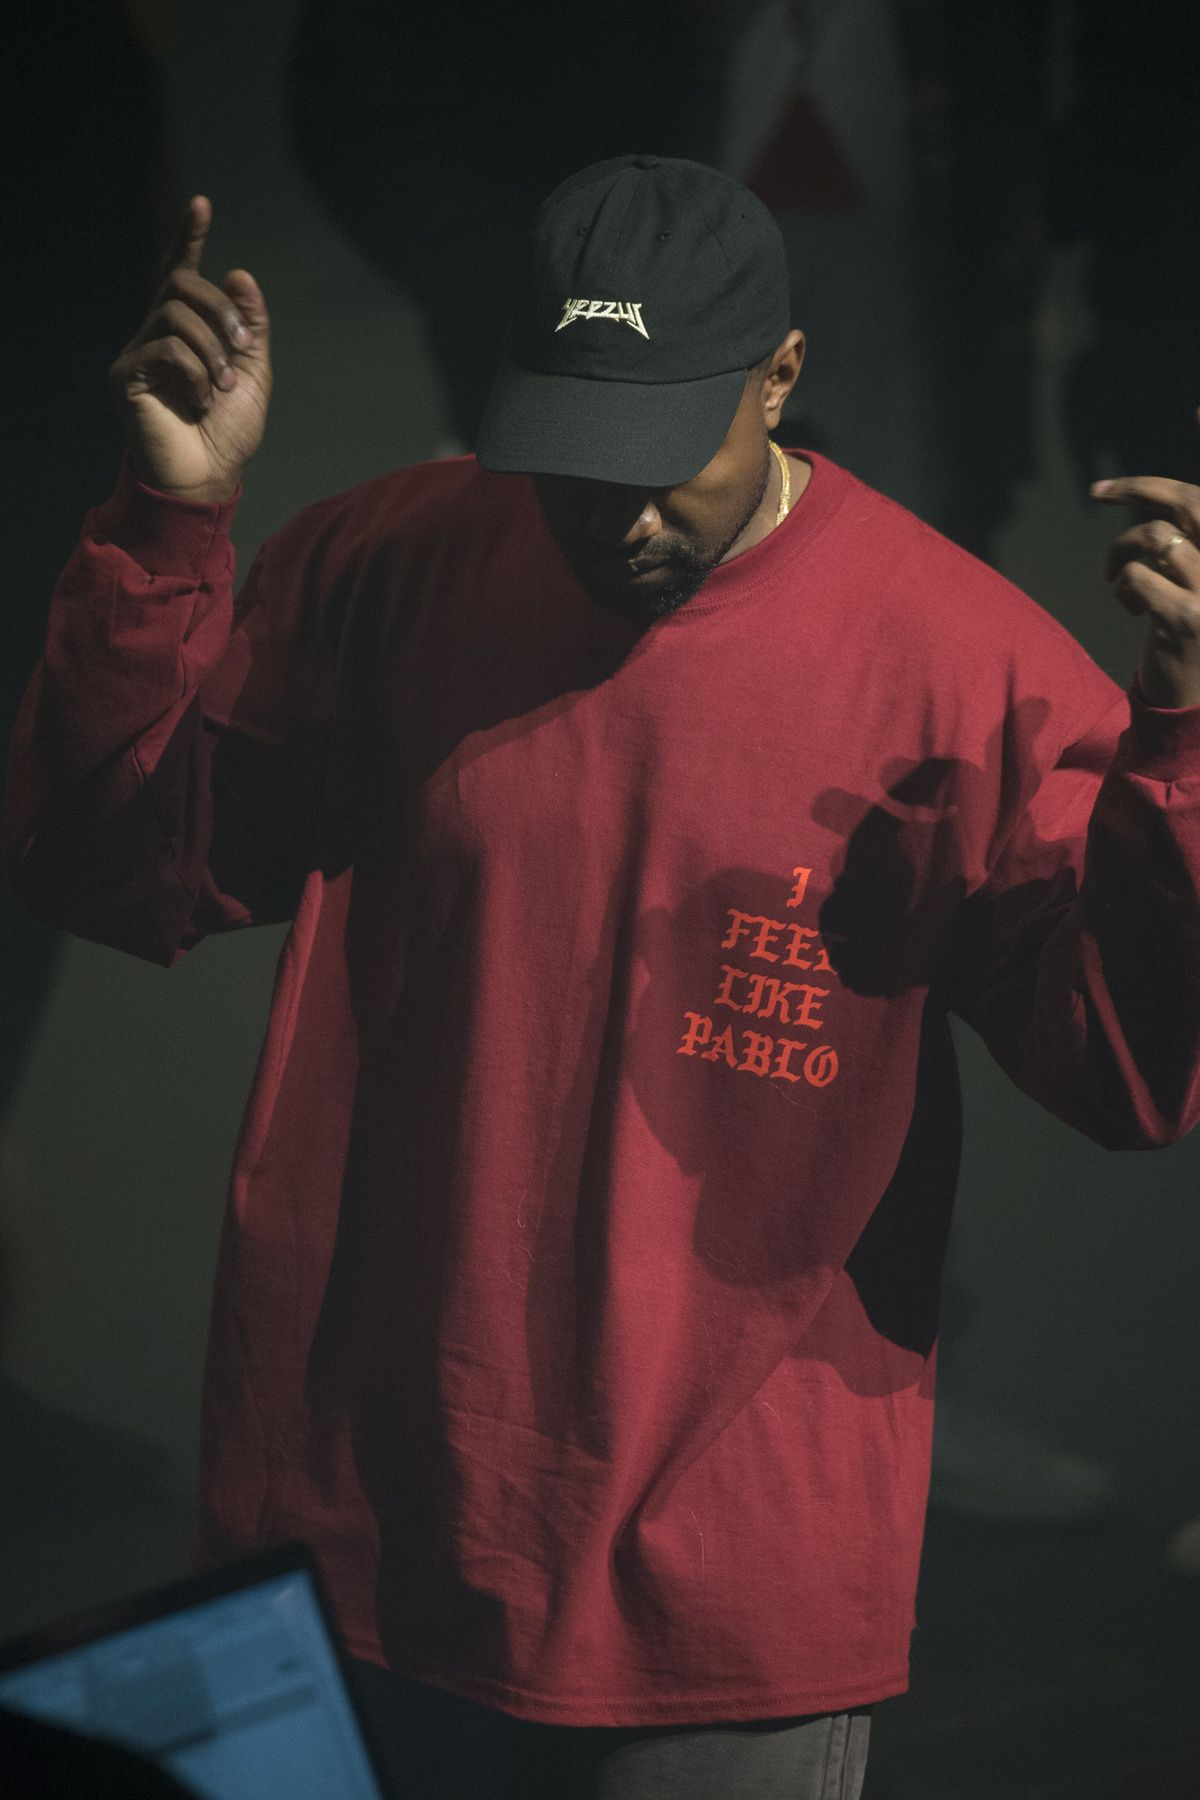 Kanye west iphone wallpaper tumblr - Hot News Kanye West To Open A Life Of Pablo Pop Up Store Http